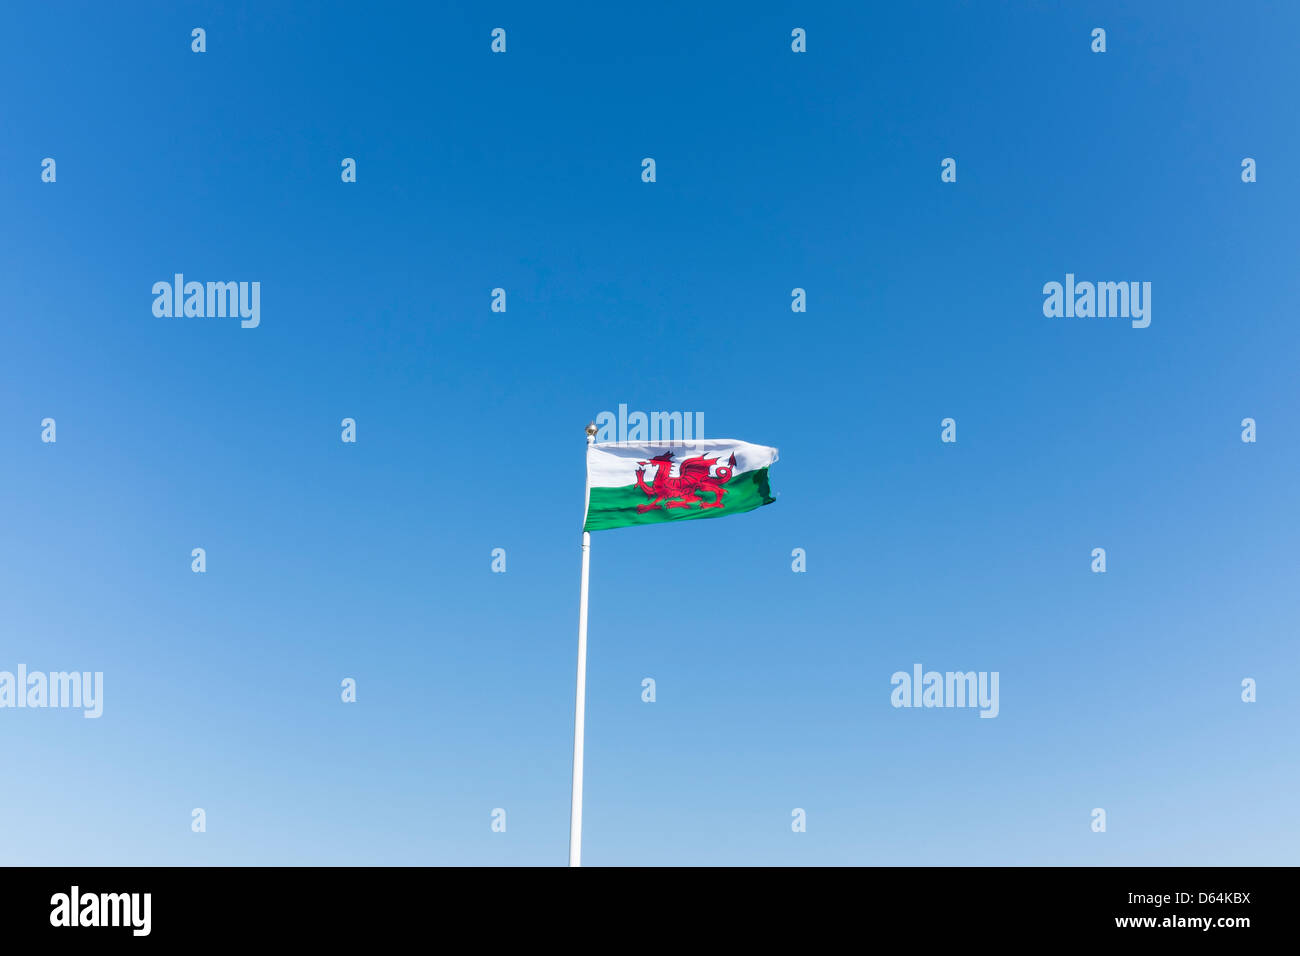 Welsh flag on pole in the wind. - Stock Image